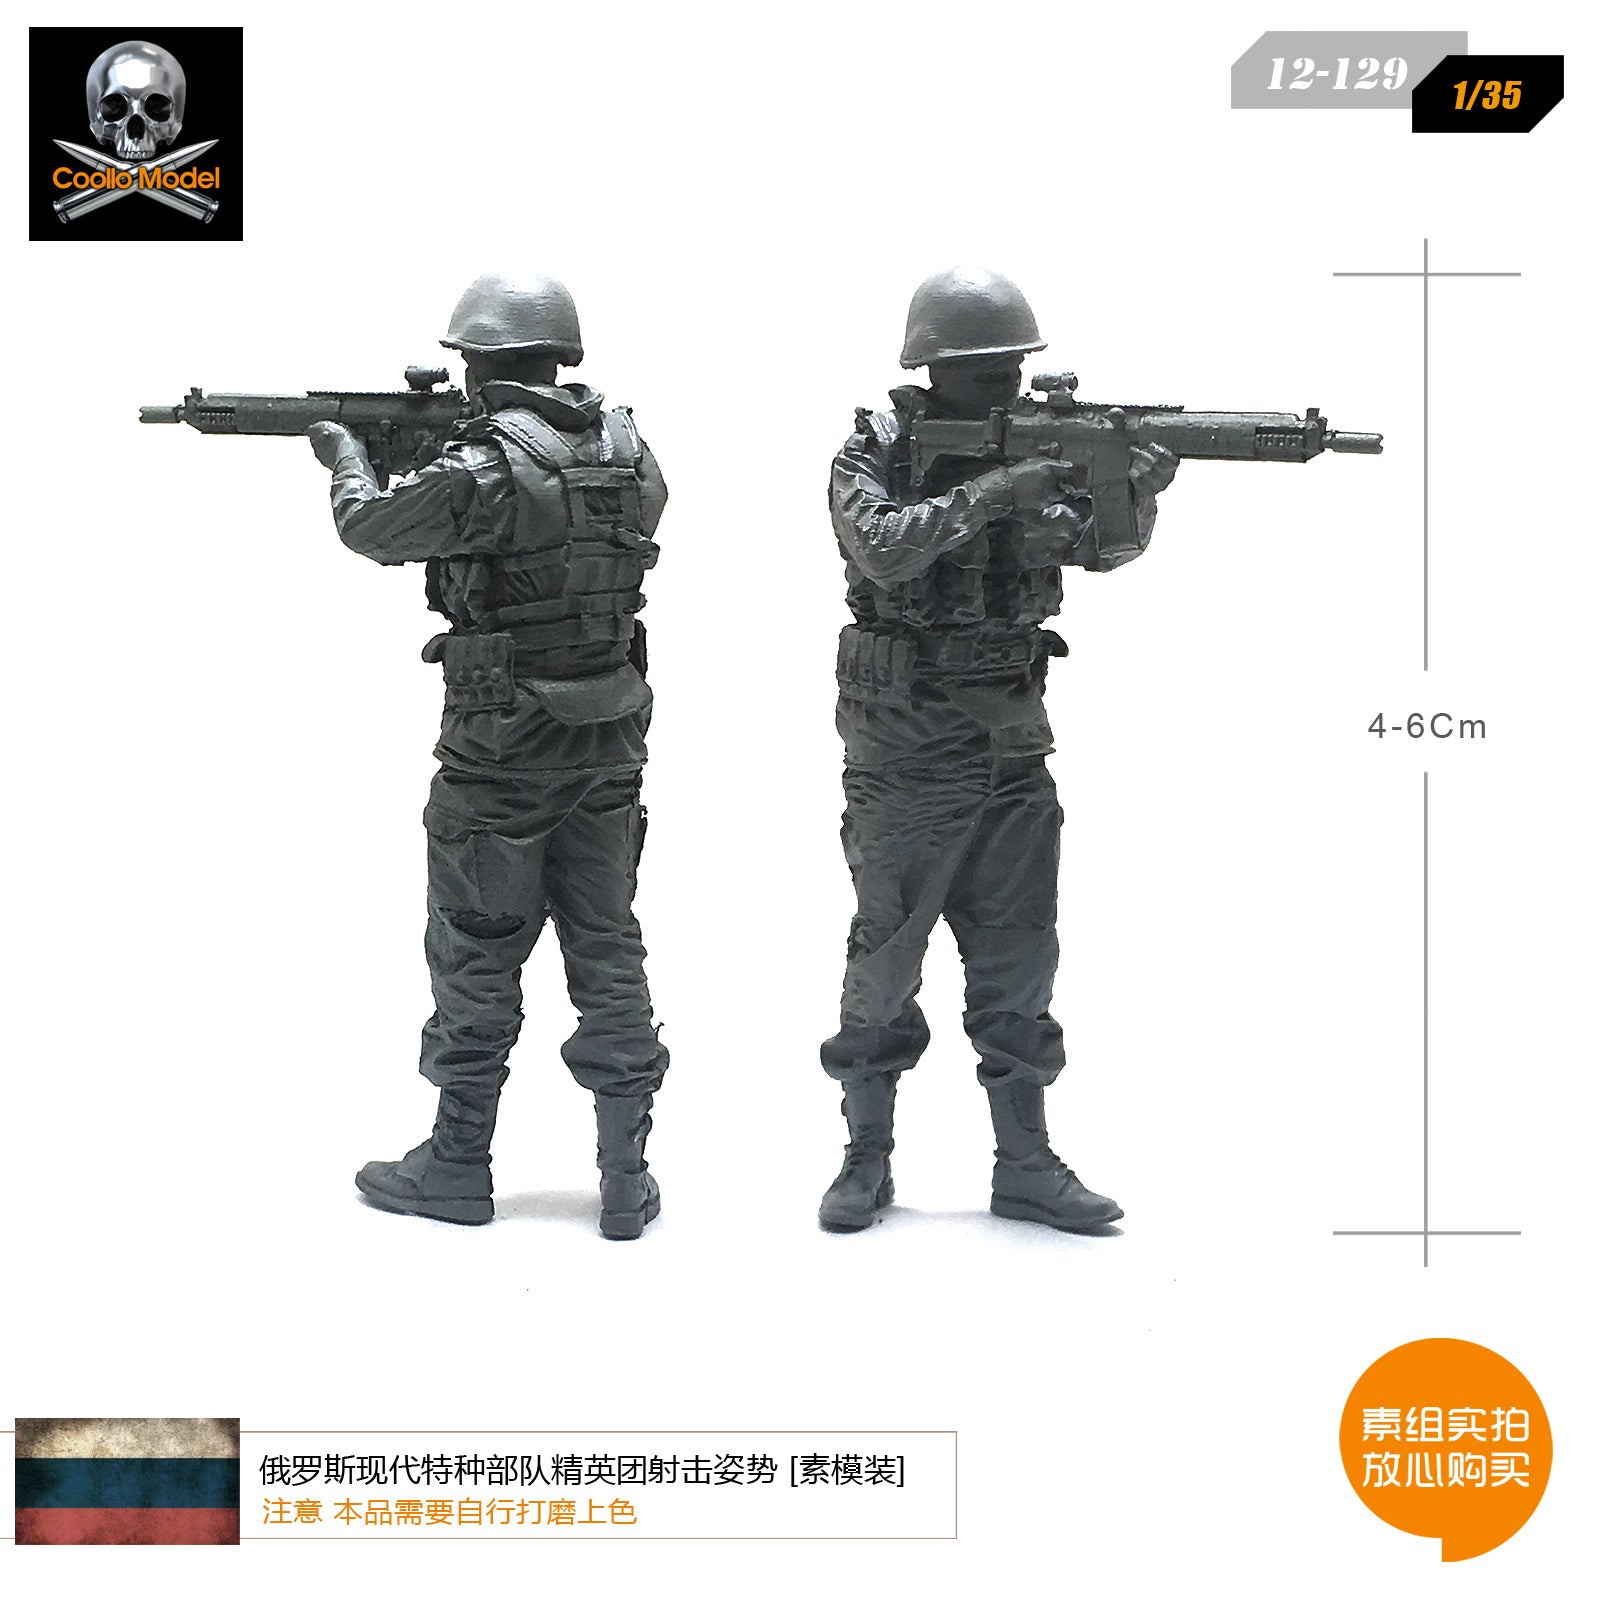 1/35 modern Russian special forces elite group shooting posture resin soldiers model 12-129